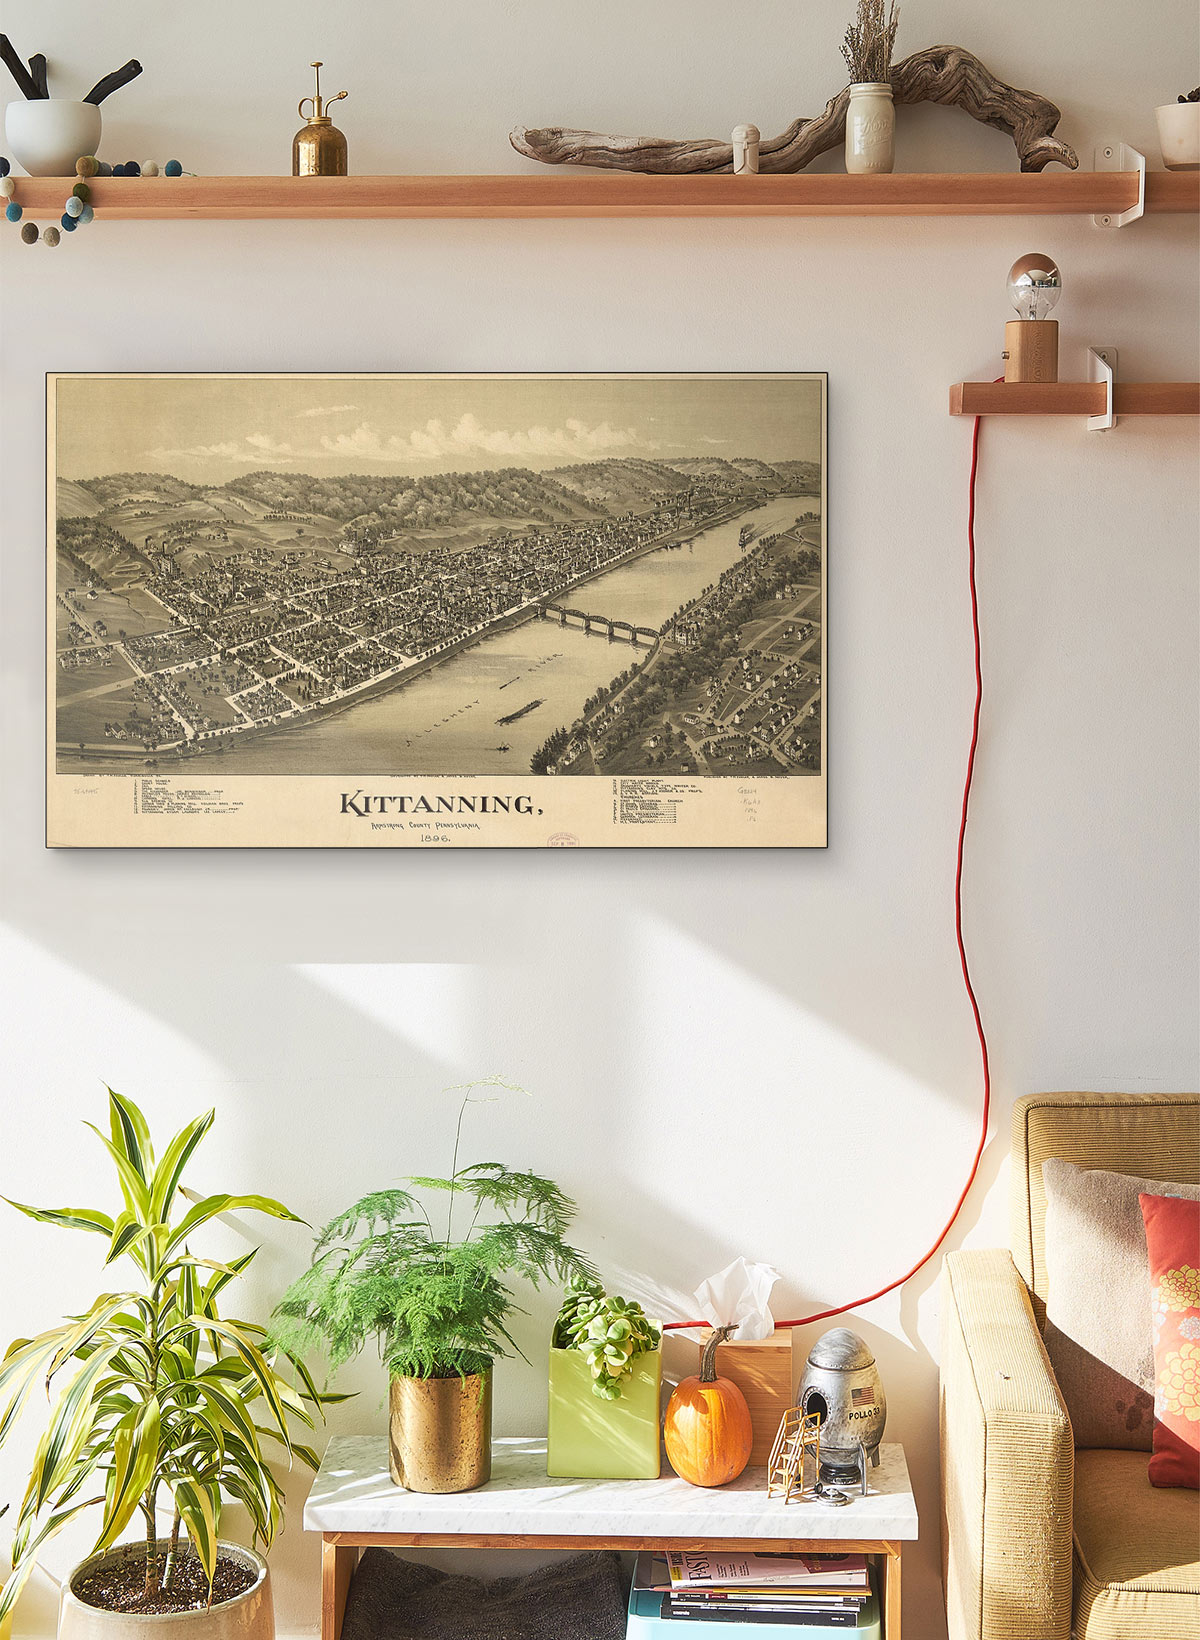 Kittanning Armstrong County Pennsylvania 1896 LARGE Vintage Map